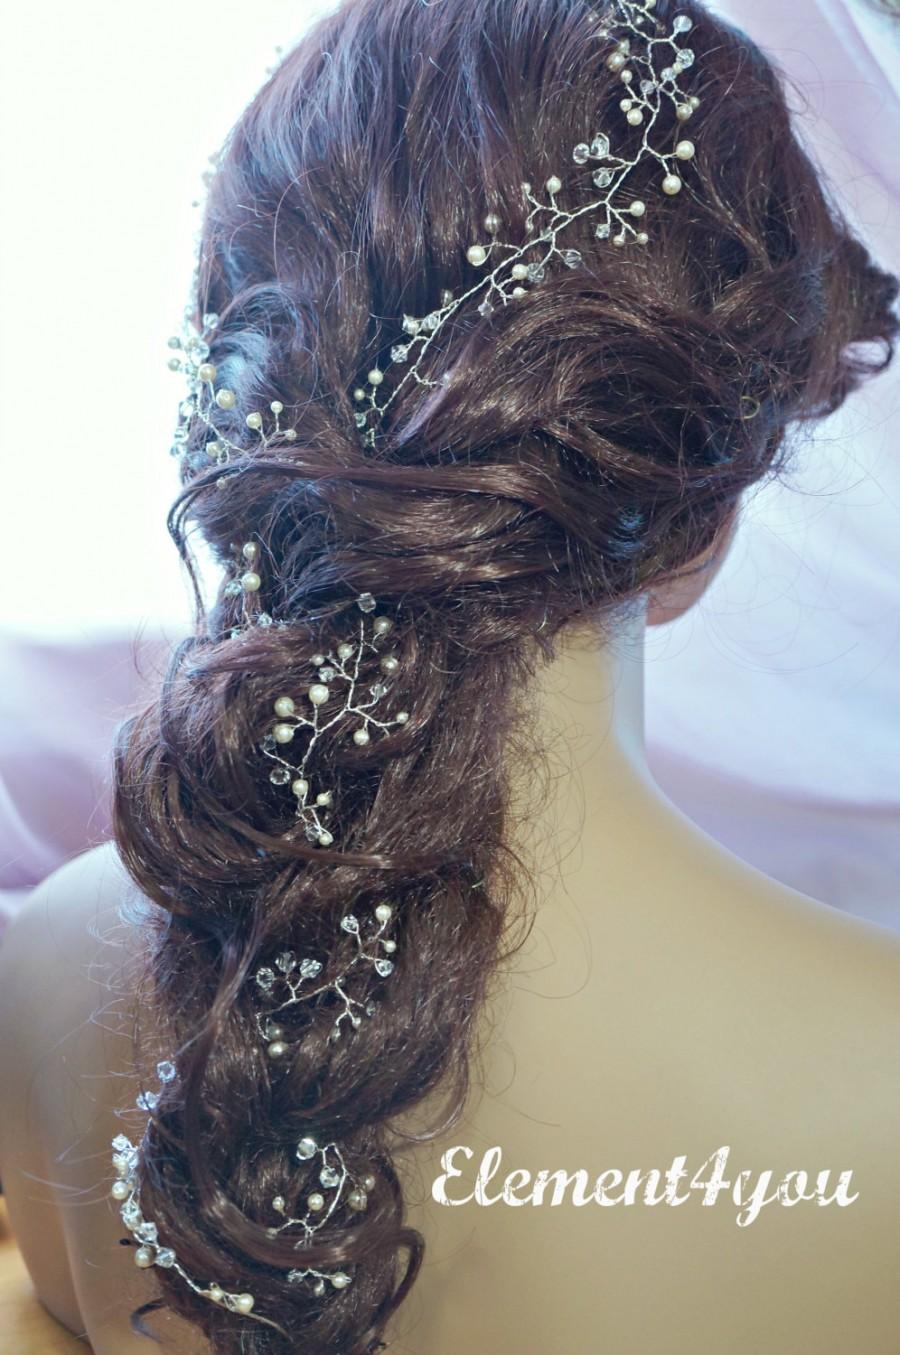 Bridal Hair Vines Extra Long Hair Vines Wedding Hair Vines Brides